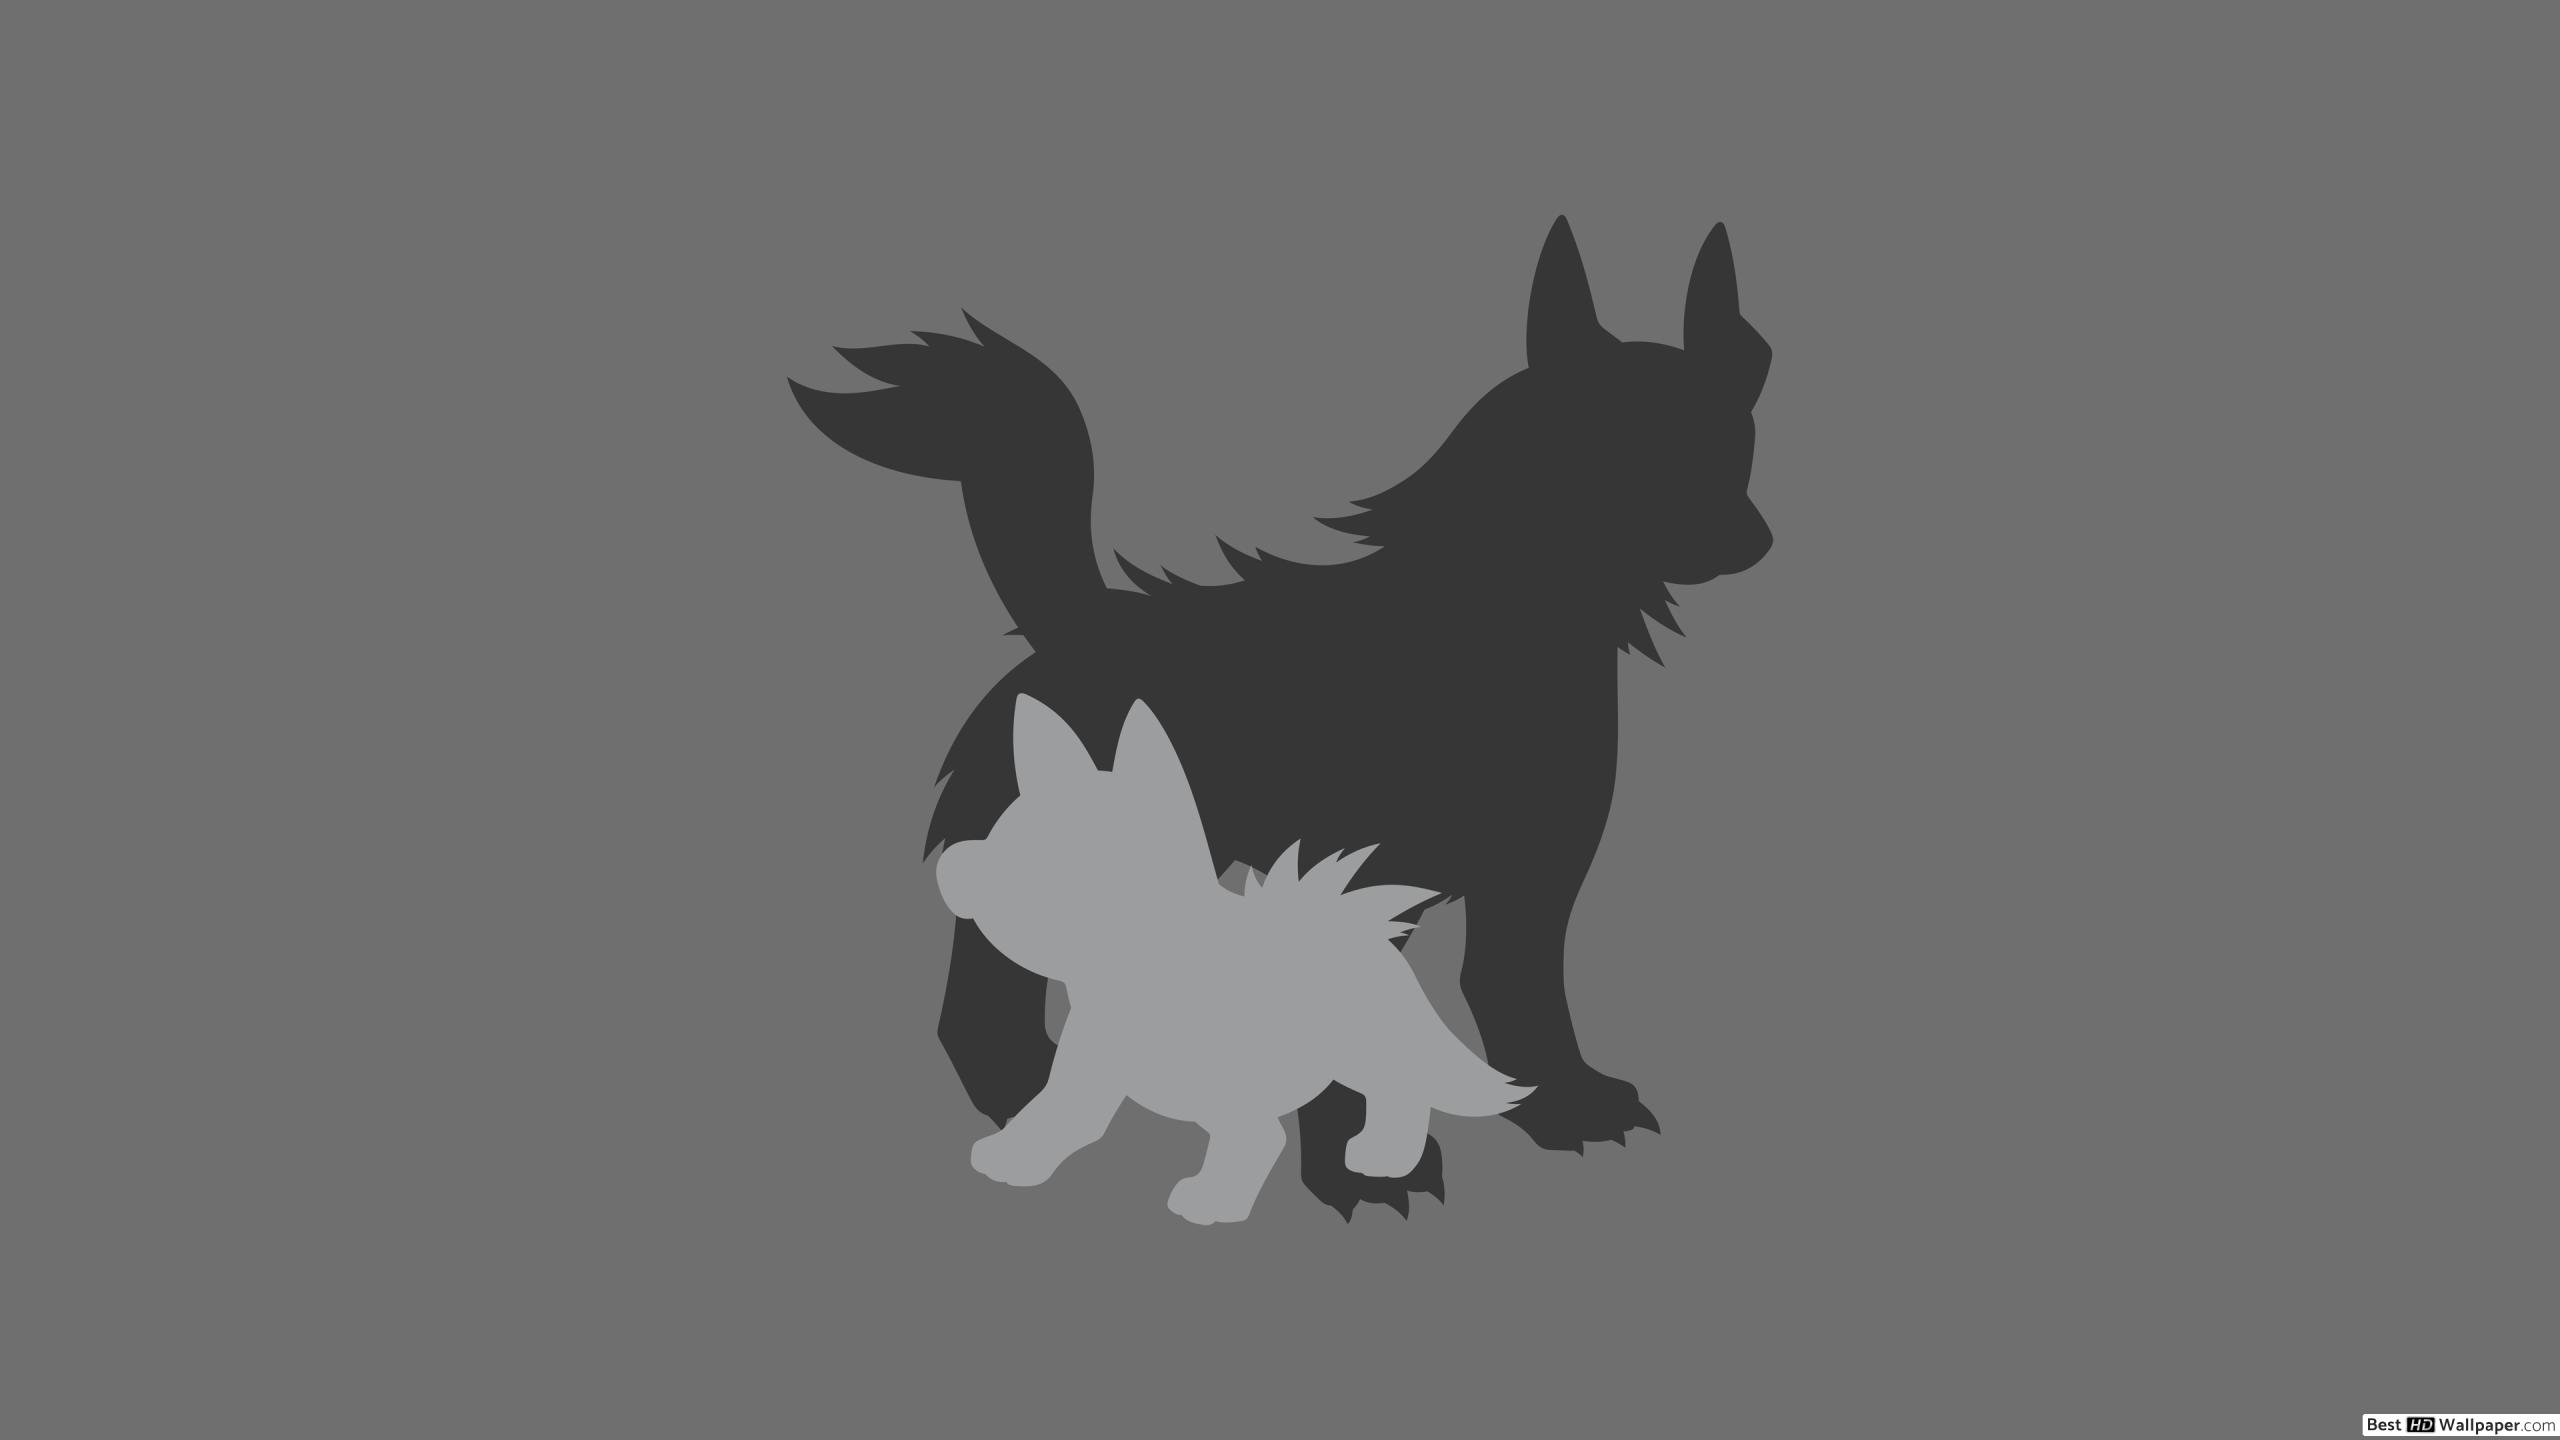 Mightyena and Poochyena of Pokemon HD wallpaper download 2560x1440